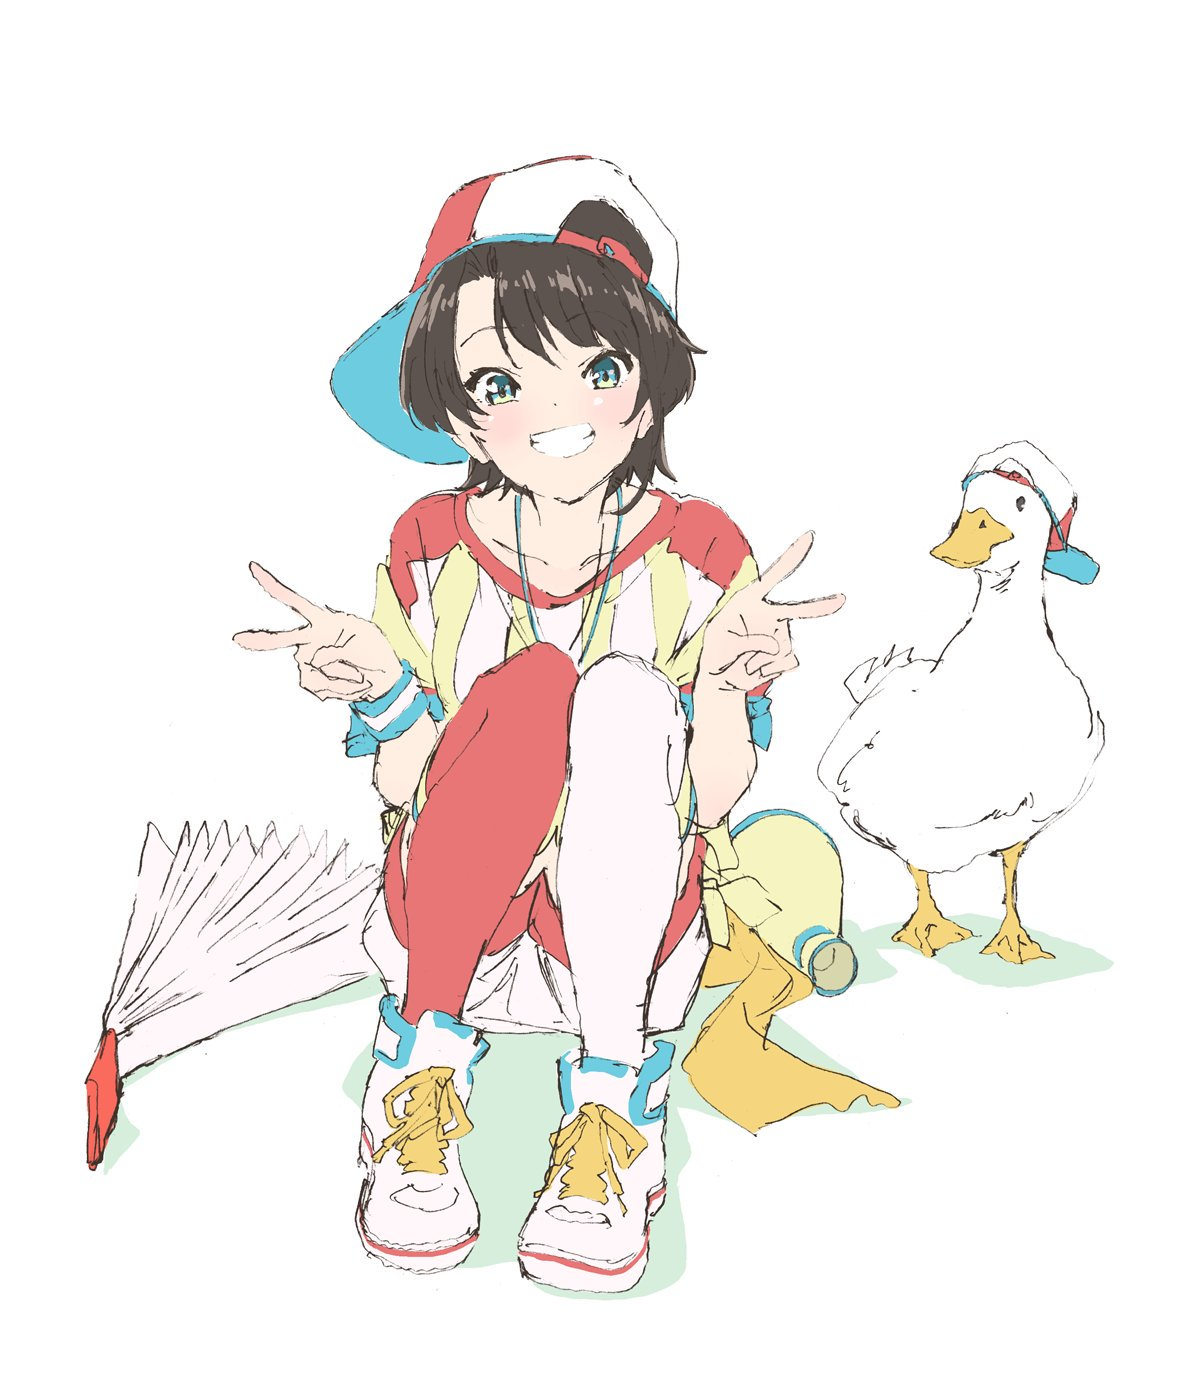 1girl backwards_hat beak bird black_hair blue_eyes collarbone double_v duck fan hat highres hololive looking_at_viewer marugayotsu multicolored multicolored_clothes multicolored_legwear oozora_subaru oozora_subaru_(duck) orange_legwear shadow shirt shoelaces shoes short_hair sitting smile striped striped_shirt striped_wristband teeth thigh-highs v vertical-striped_shirt vertical_stripes virtual_youtuber white_background white_footwear white_legwear wristband